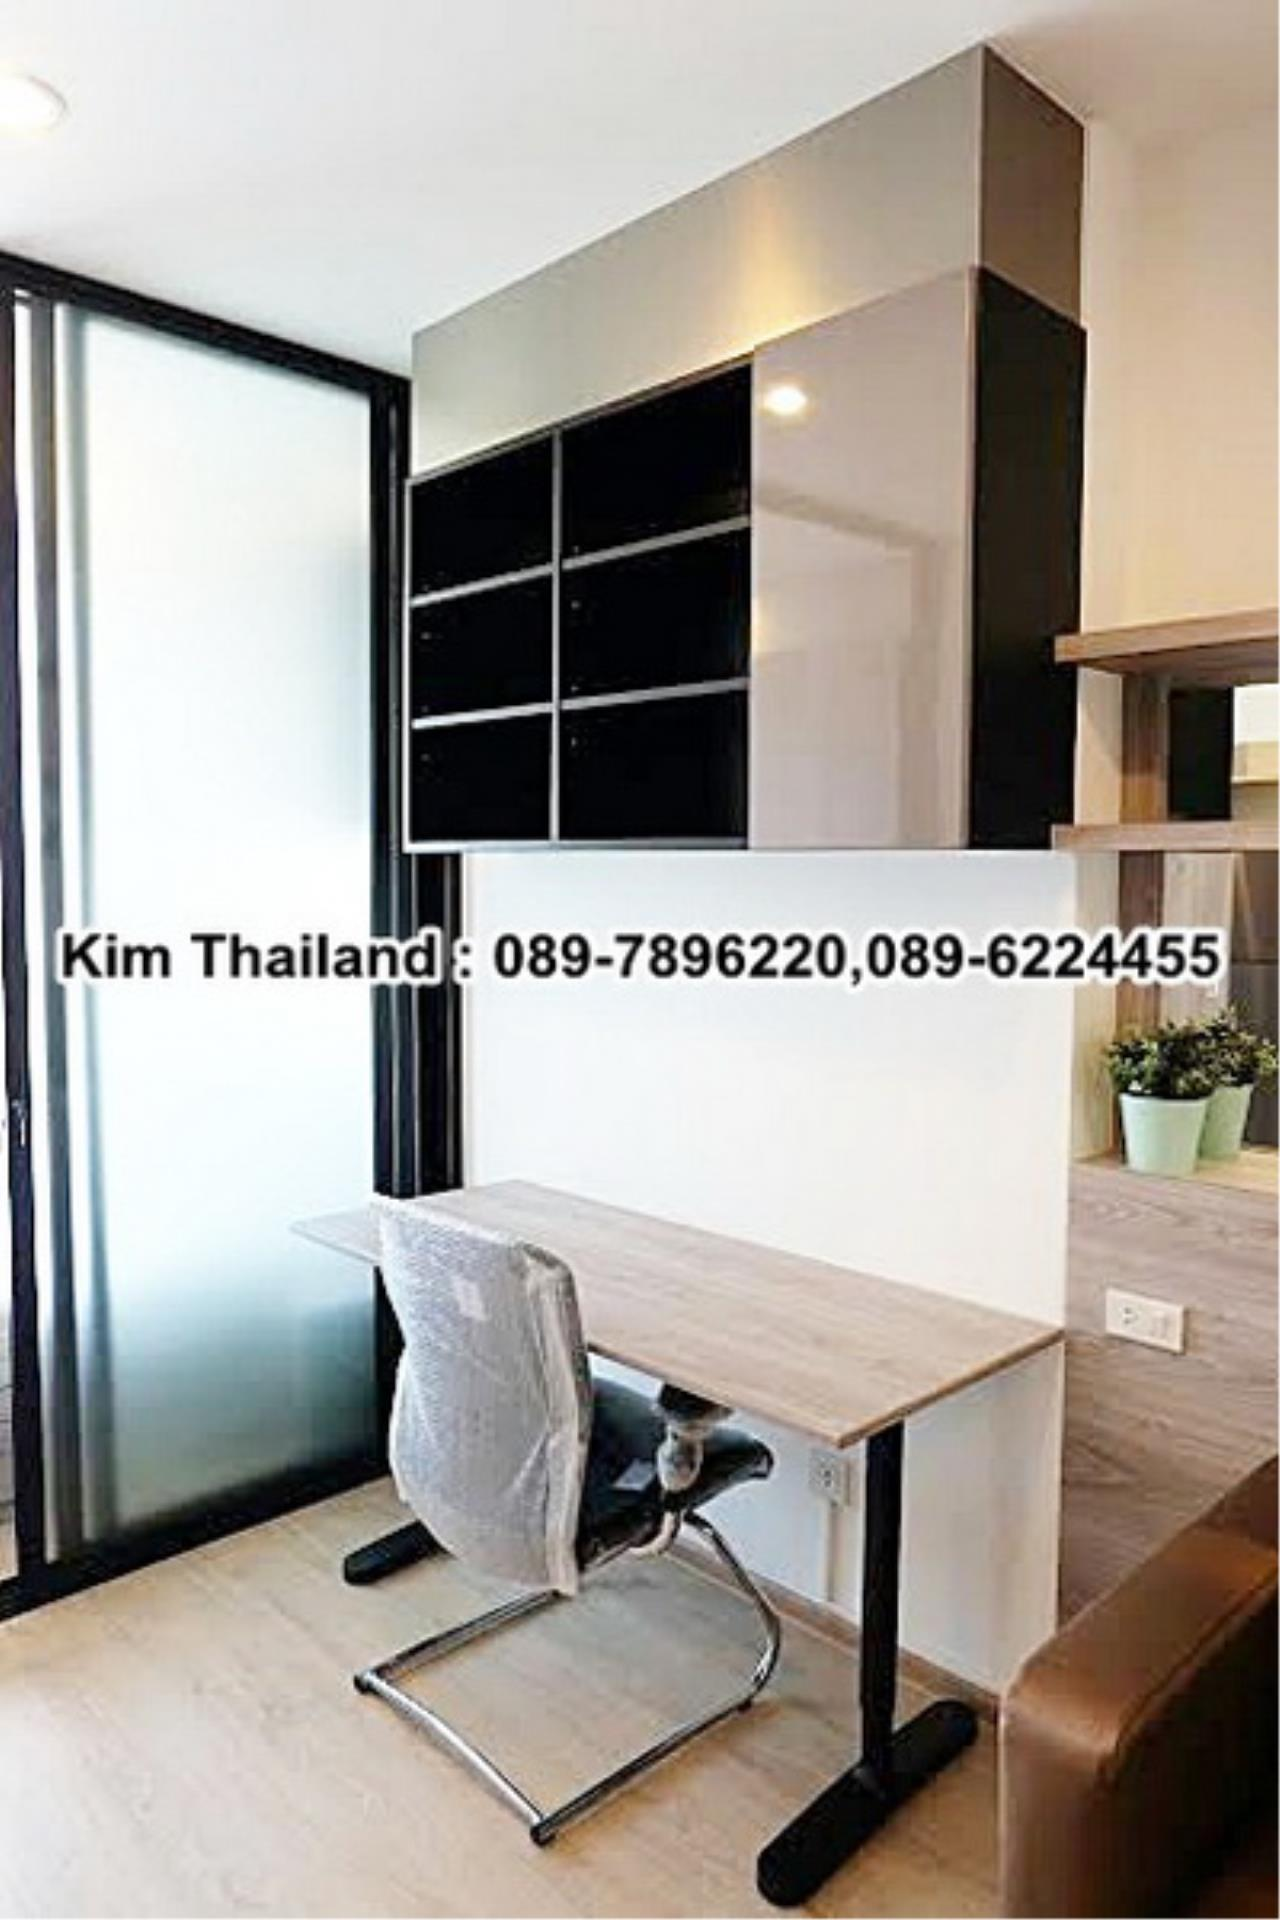 BKKcondorental Agency's Condo for rent,Condo Ideo Q Samyan. Area 29 sqm. 1 bedroom.  Rent 23,000 baht /month. 1